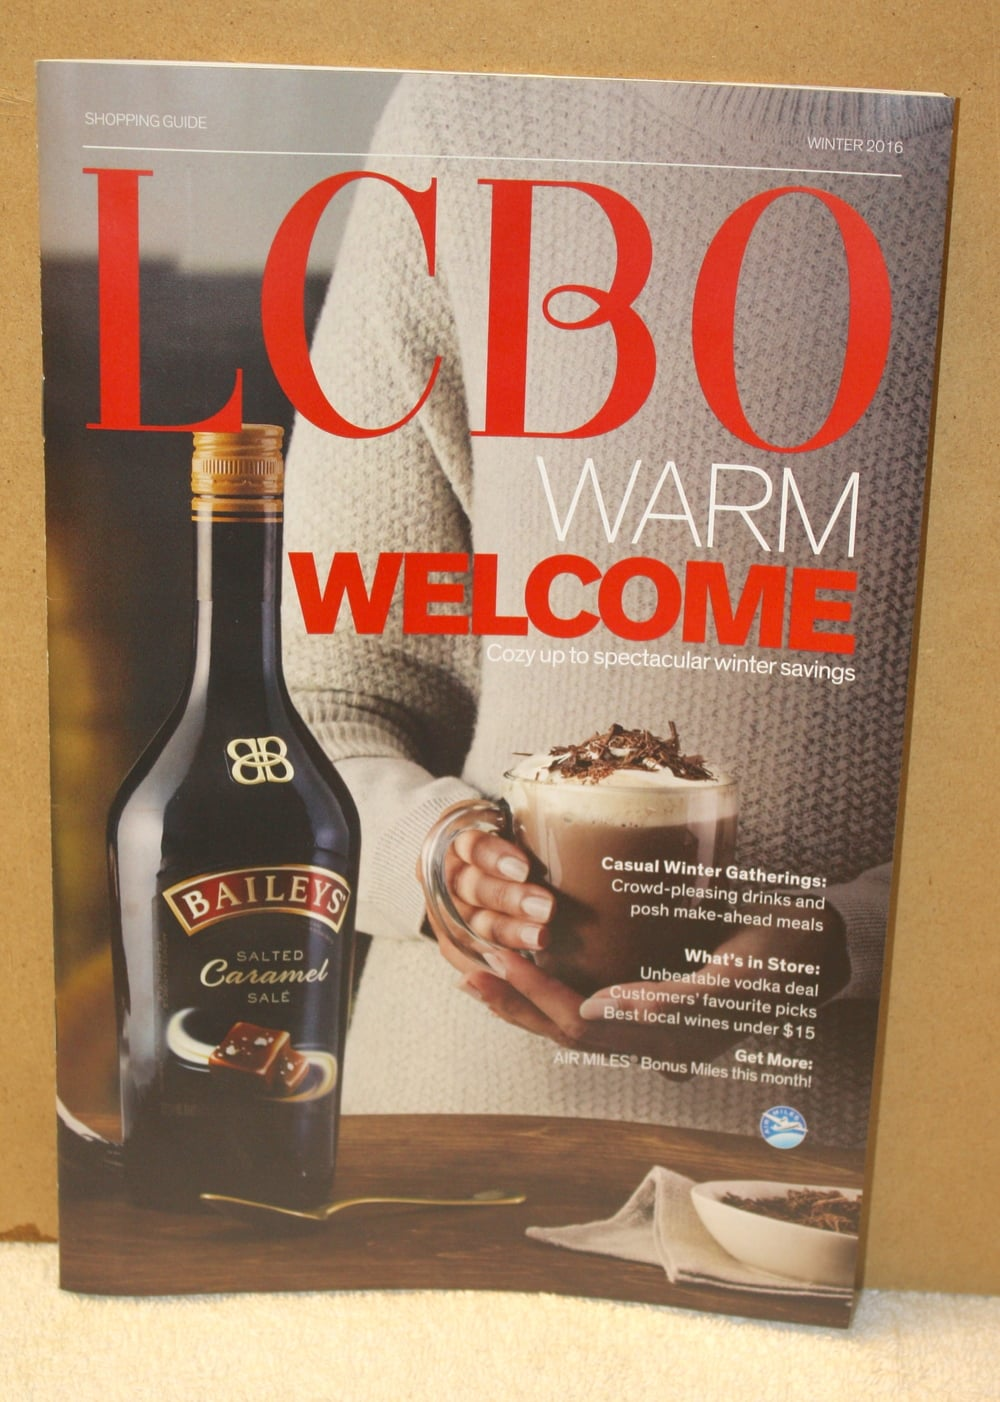 LCBO Warm Welcome Cover_Pompous Ass Shari's Pick (Winter2016)